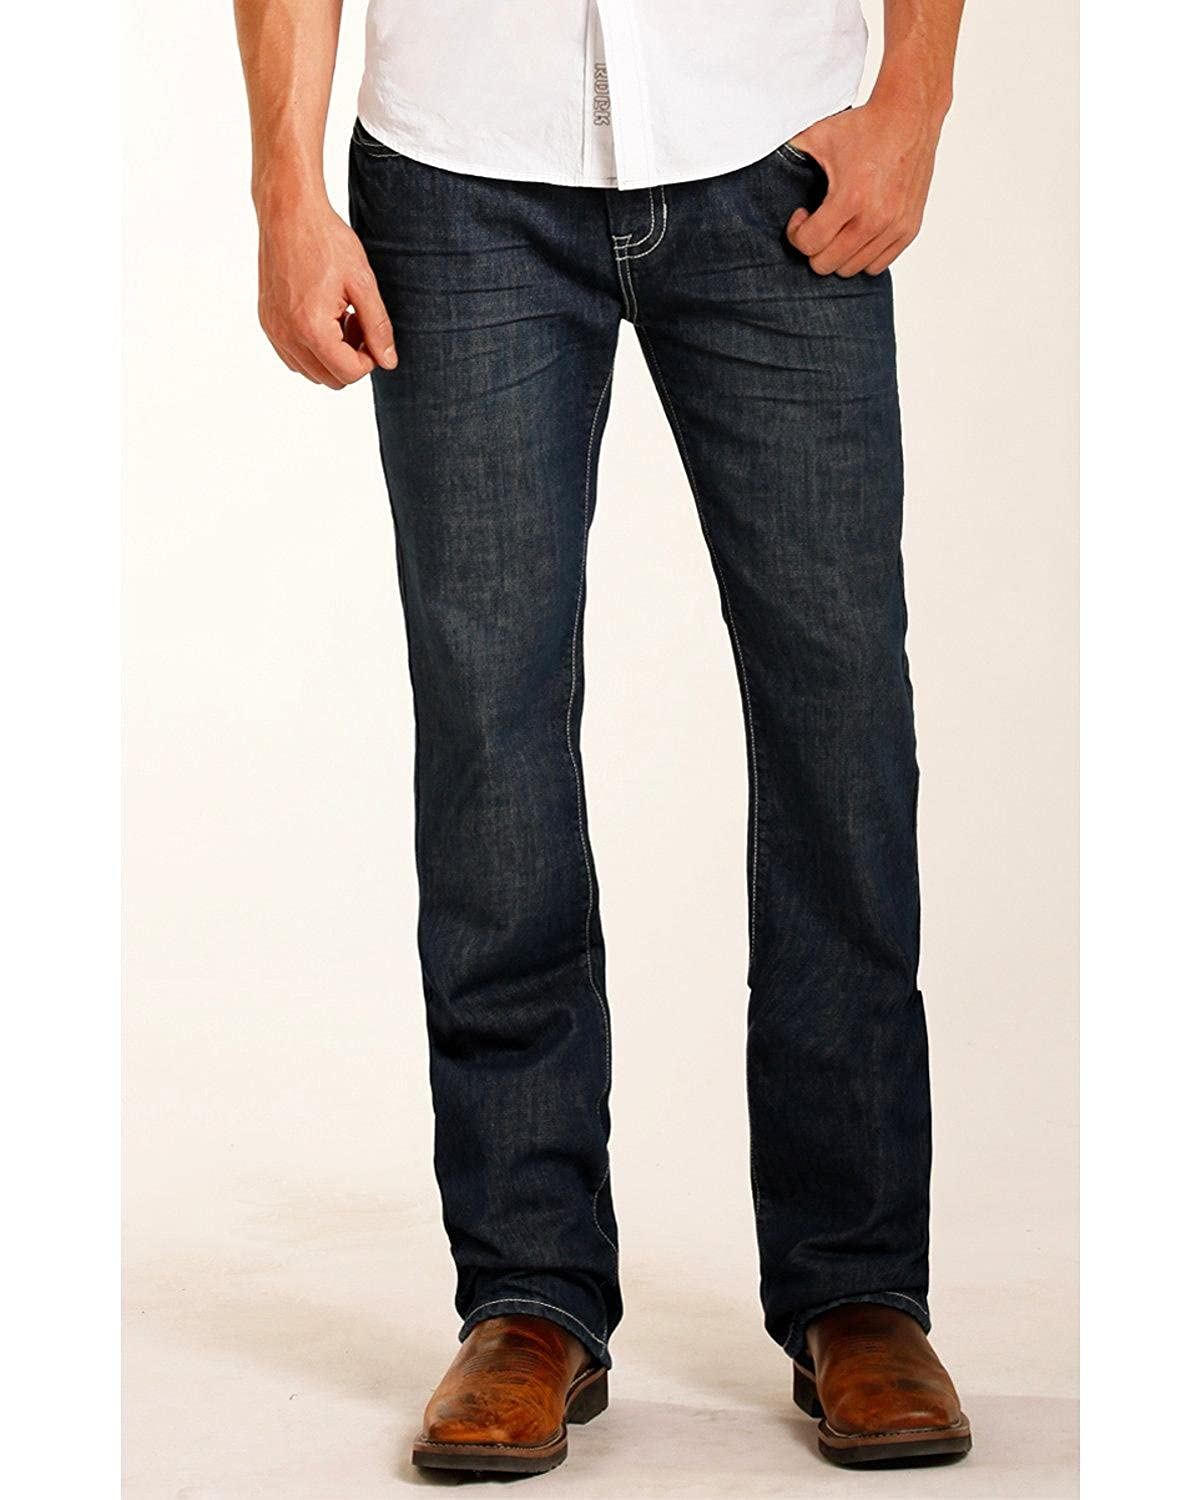 Rock /& Roll Cowboy Mens and Pistol Flame Resistant Jeans Straight Leg Blue 42W x 30L